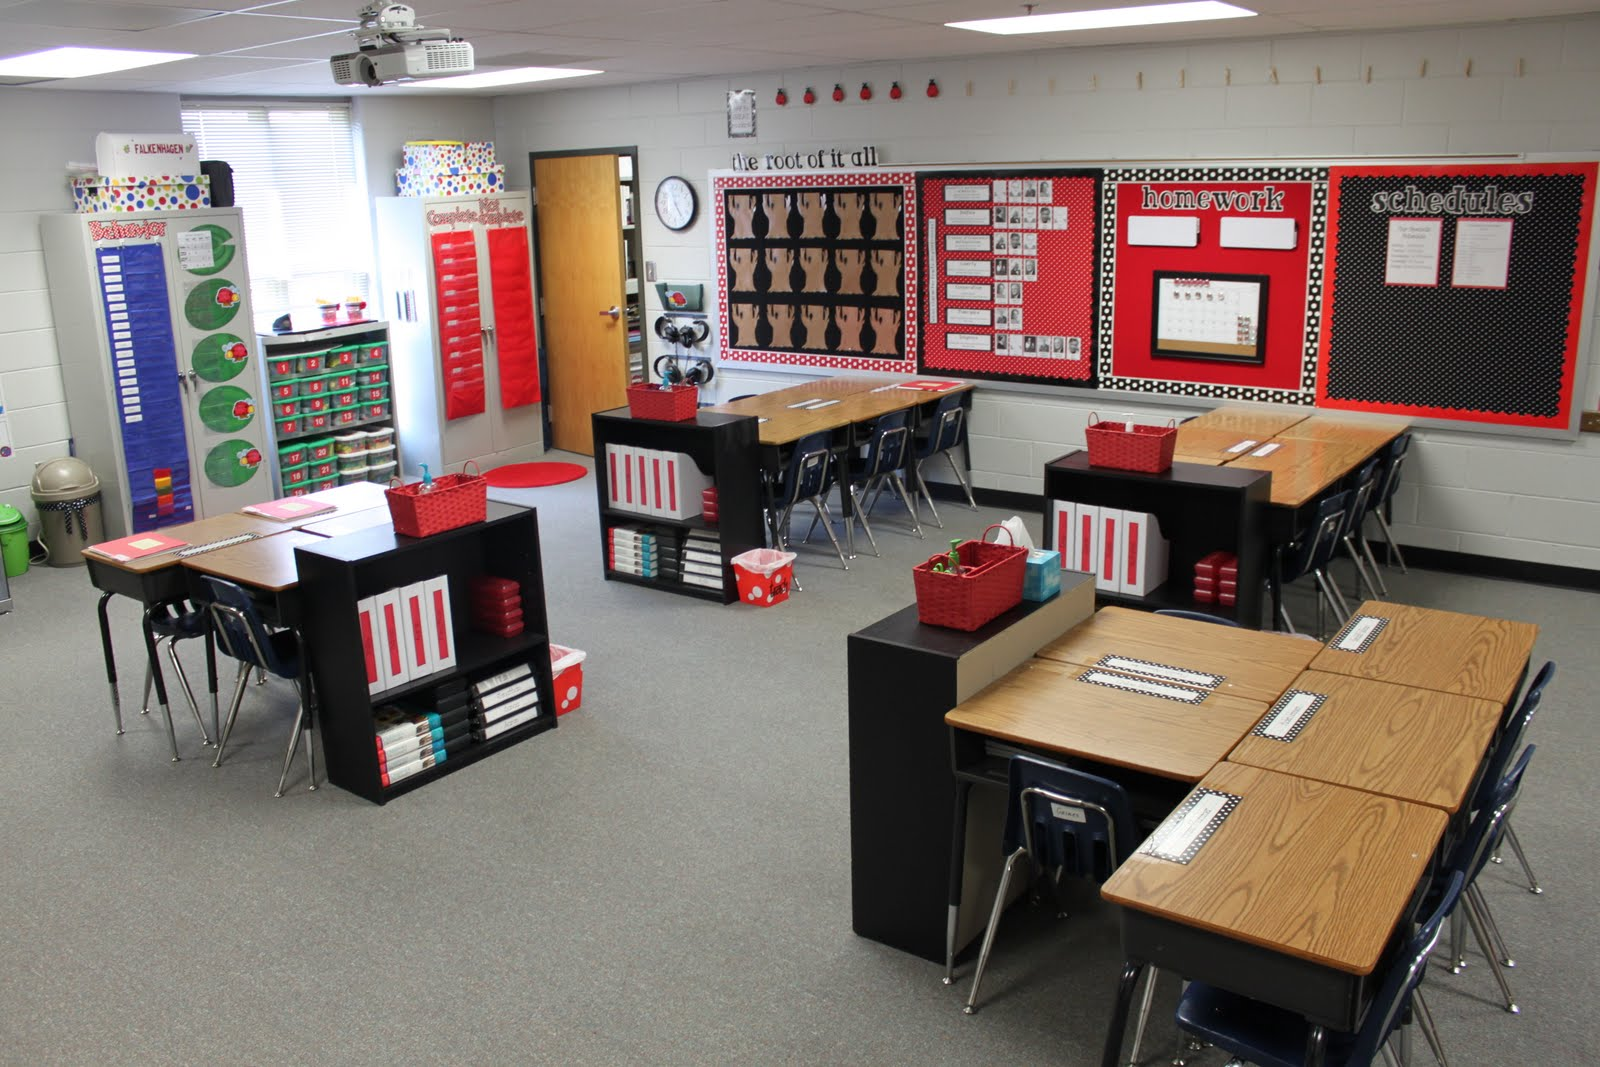 Classroom Design And Organization Ideas ~ Dandelions and dragonflies finally my classroom reveal